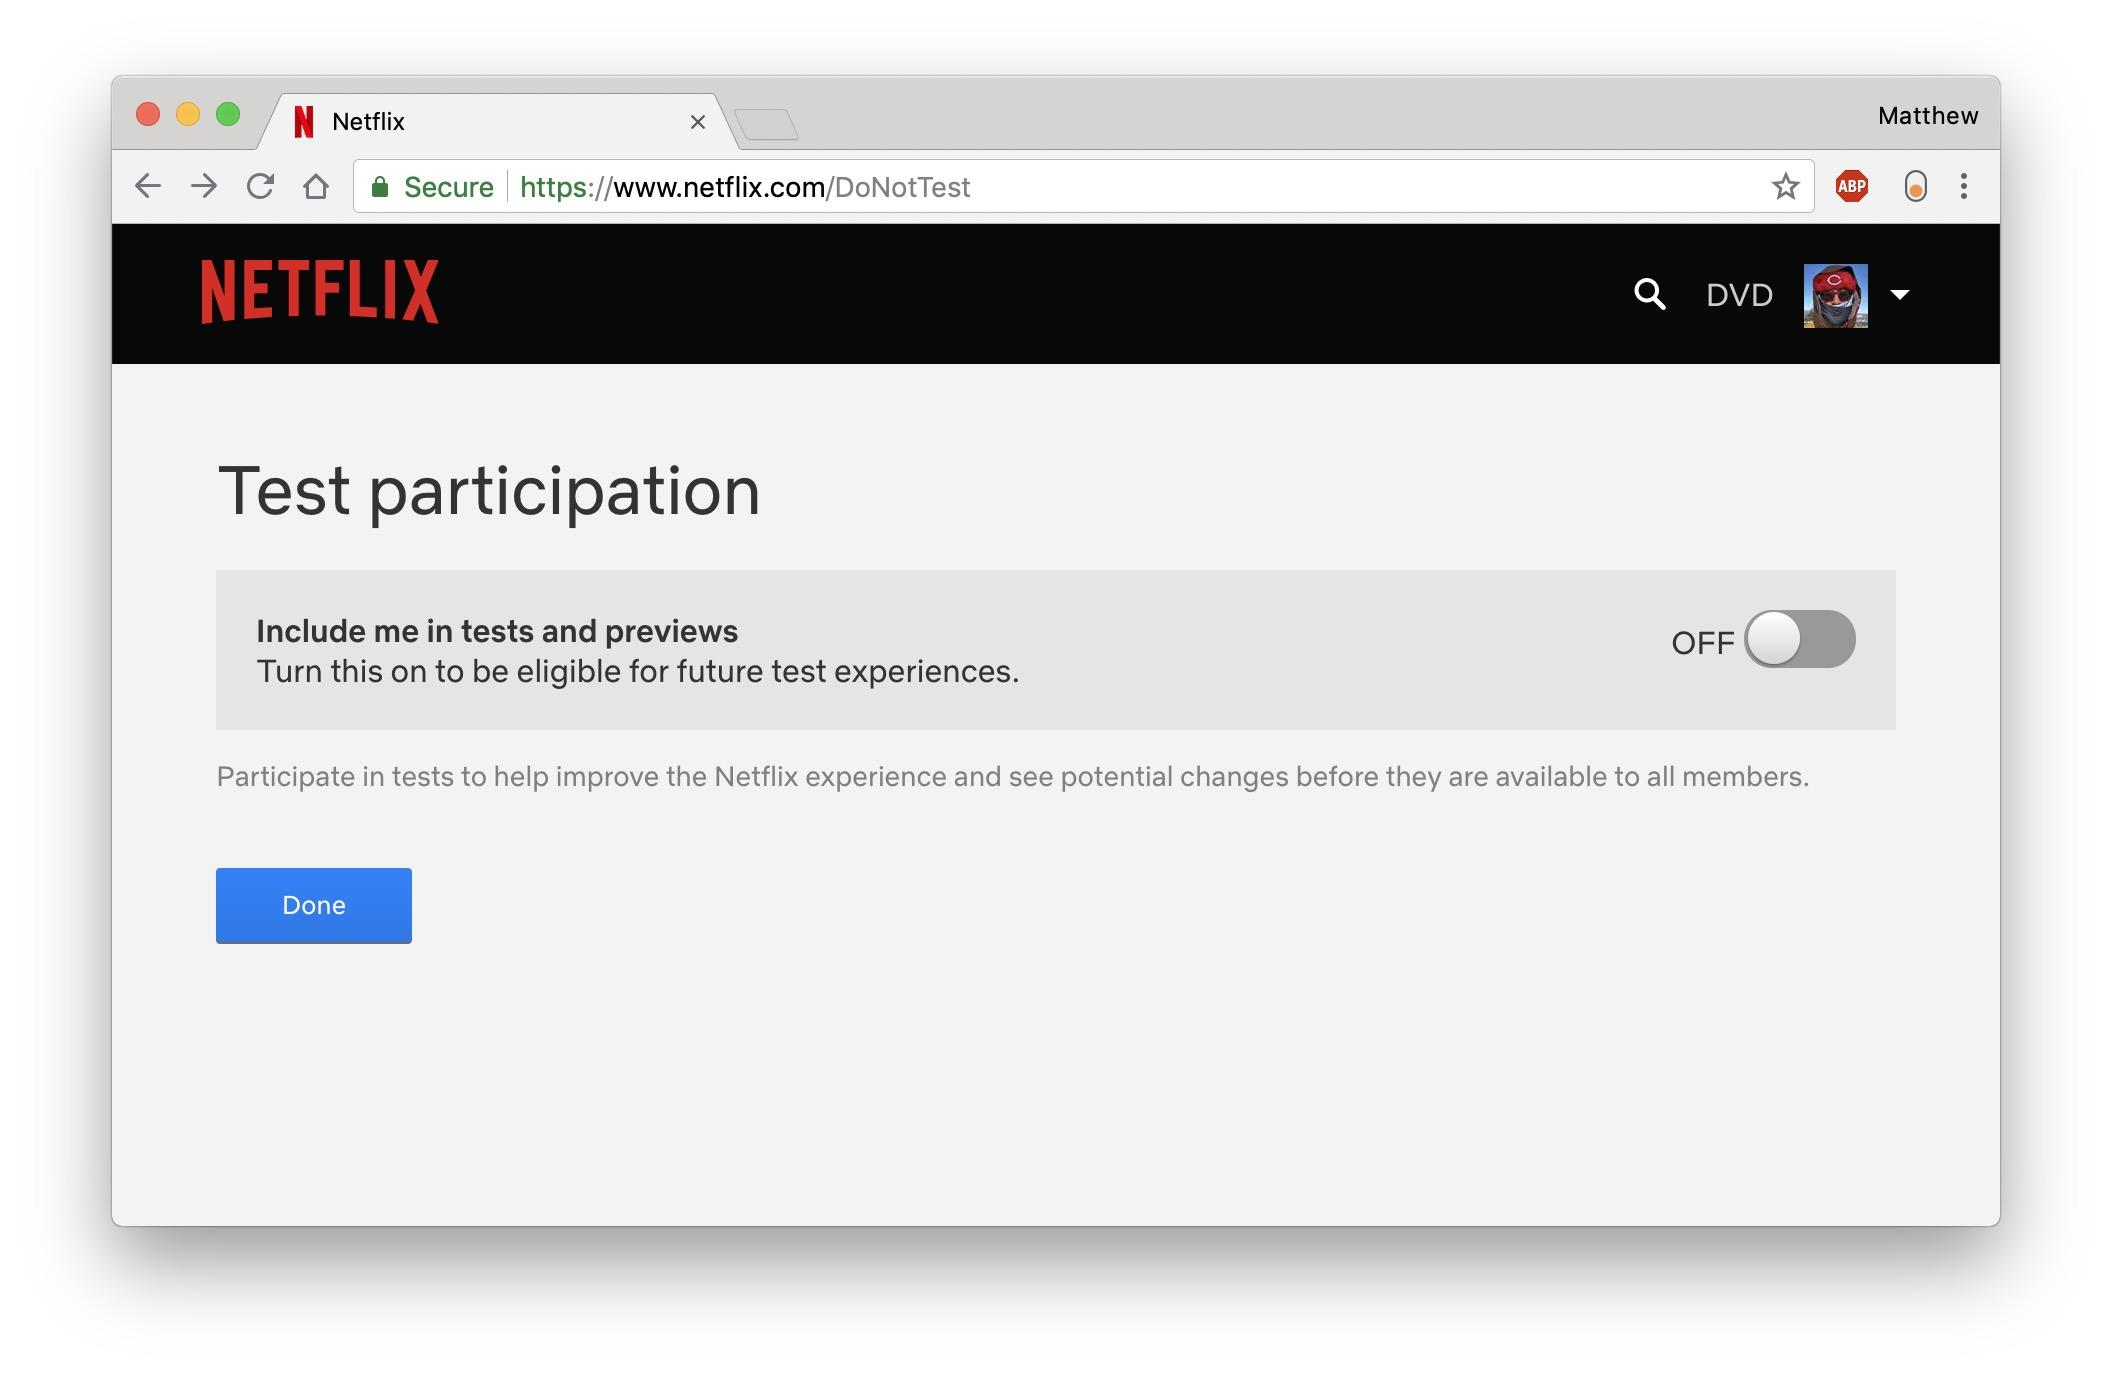 netflix-test-participation